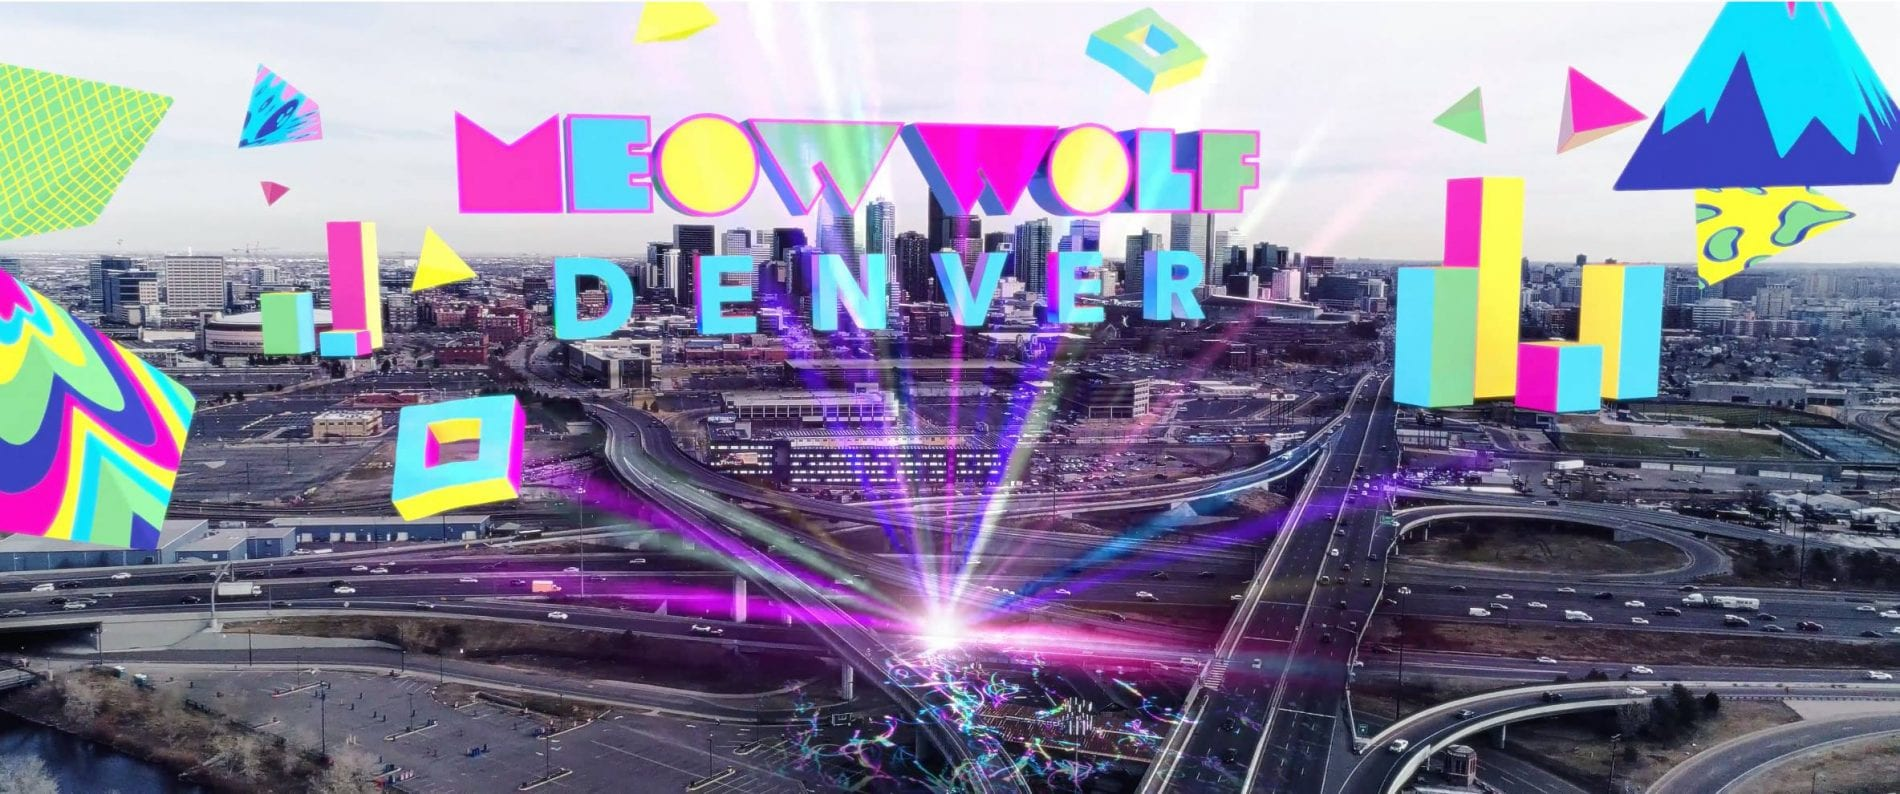 Dark Palace – Meow Wolf Denver's Inaugural 3-Day Event